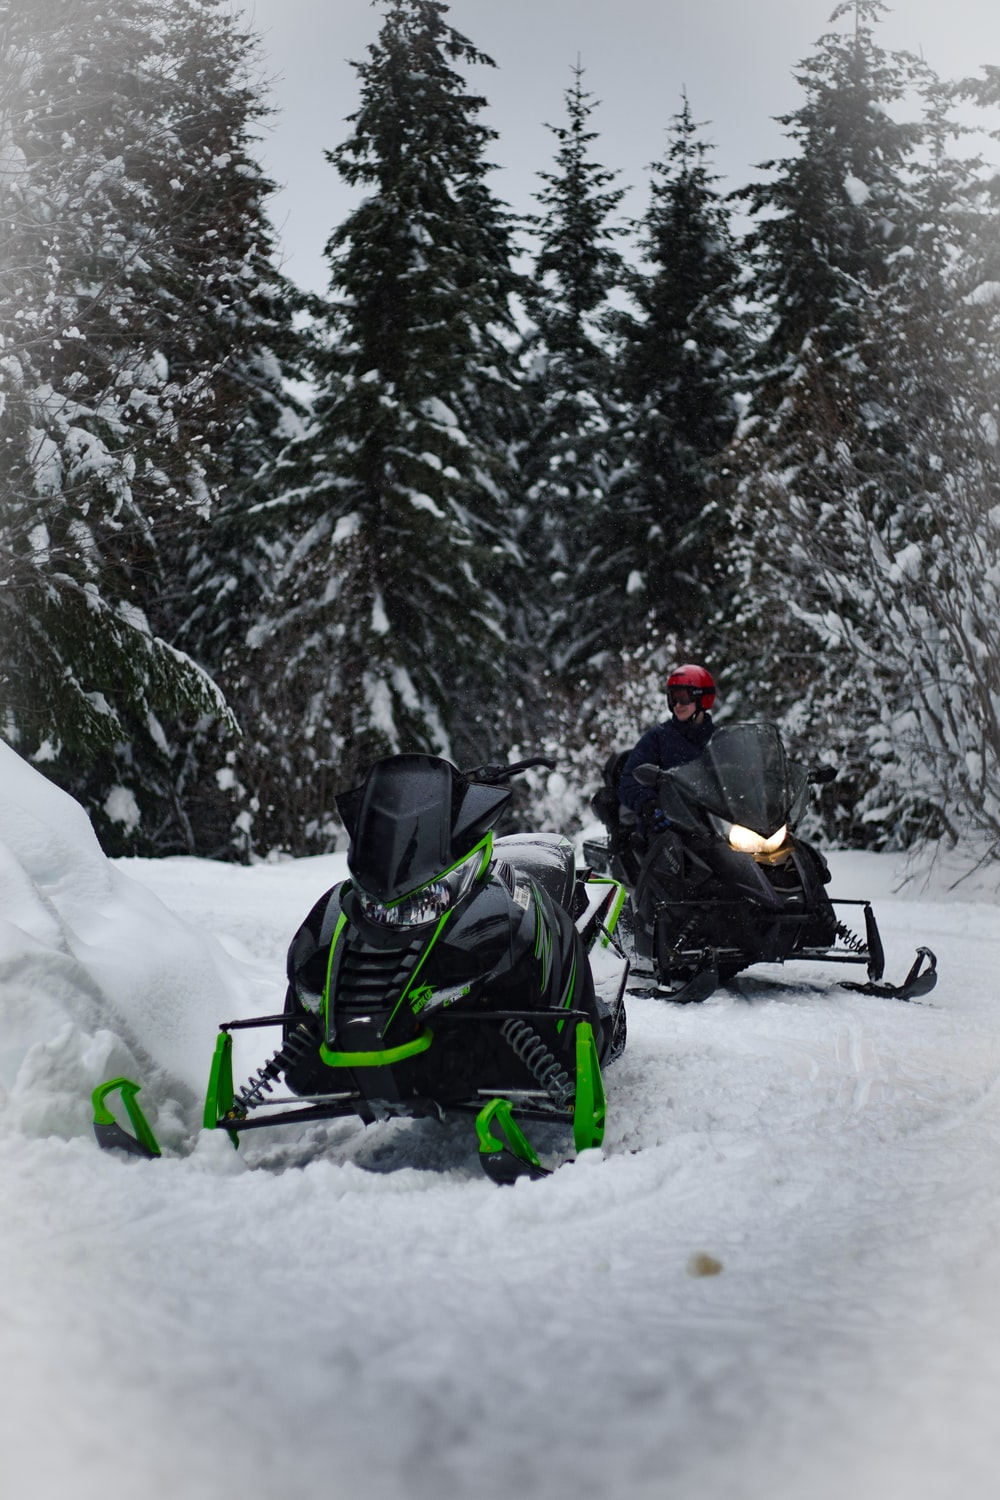 green and black snowmobile beside black snowmobile during daytime